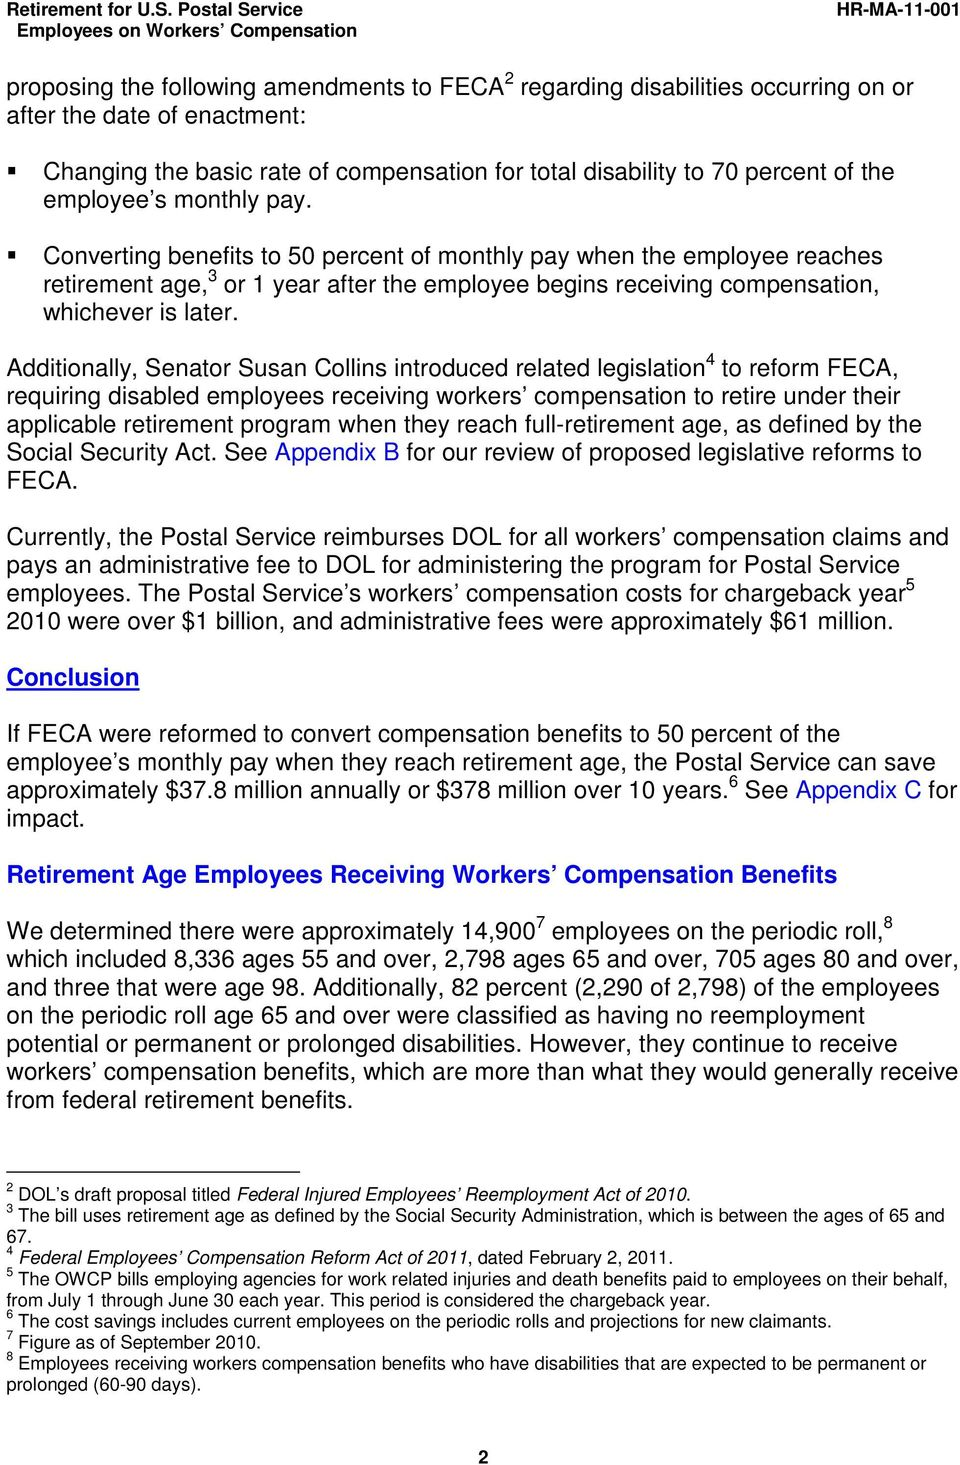 Additionally, Senator Susan Collins introduced related legislation 4 to reform FECA, requiring disabled employees receiving workers compensation to retire under their applicable retirement program